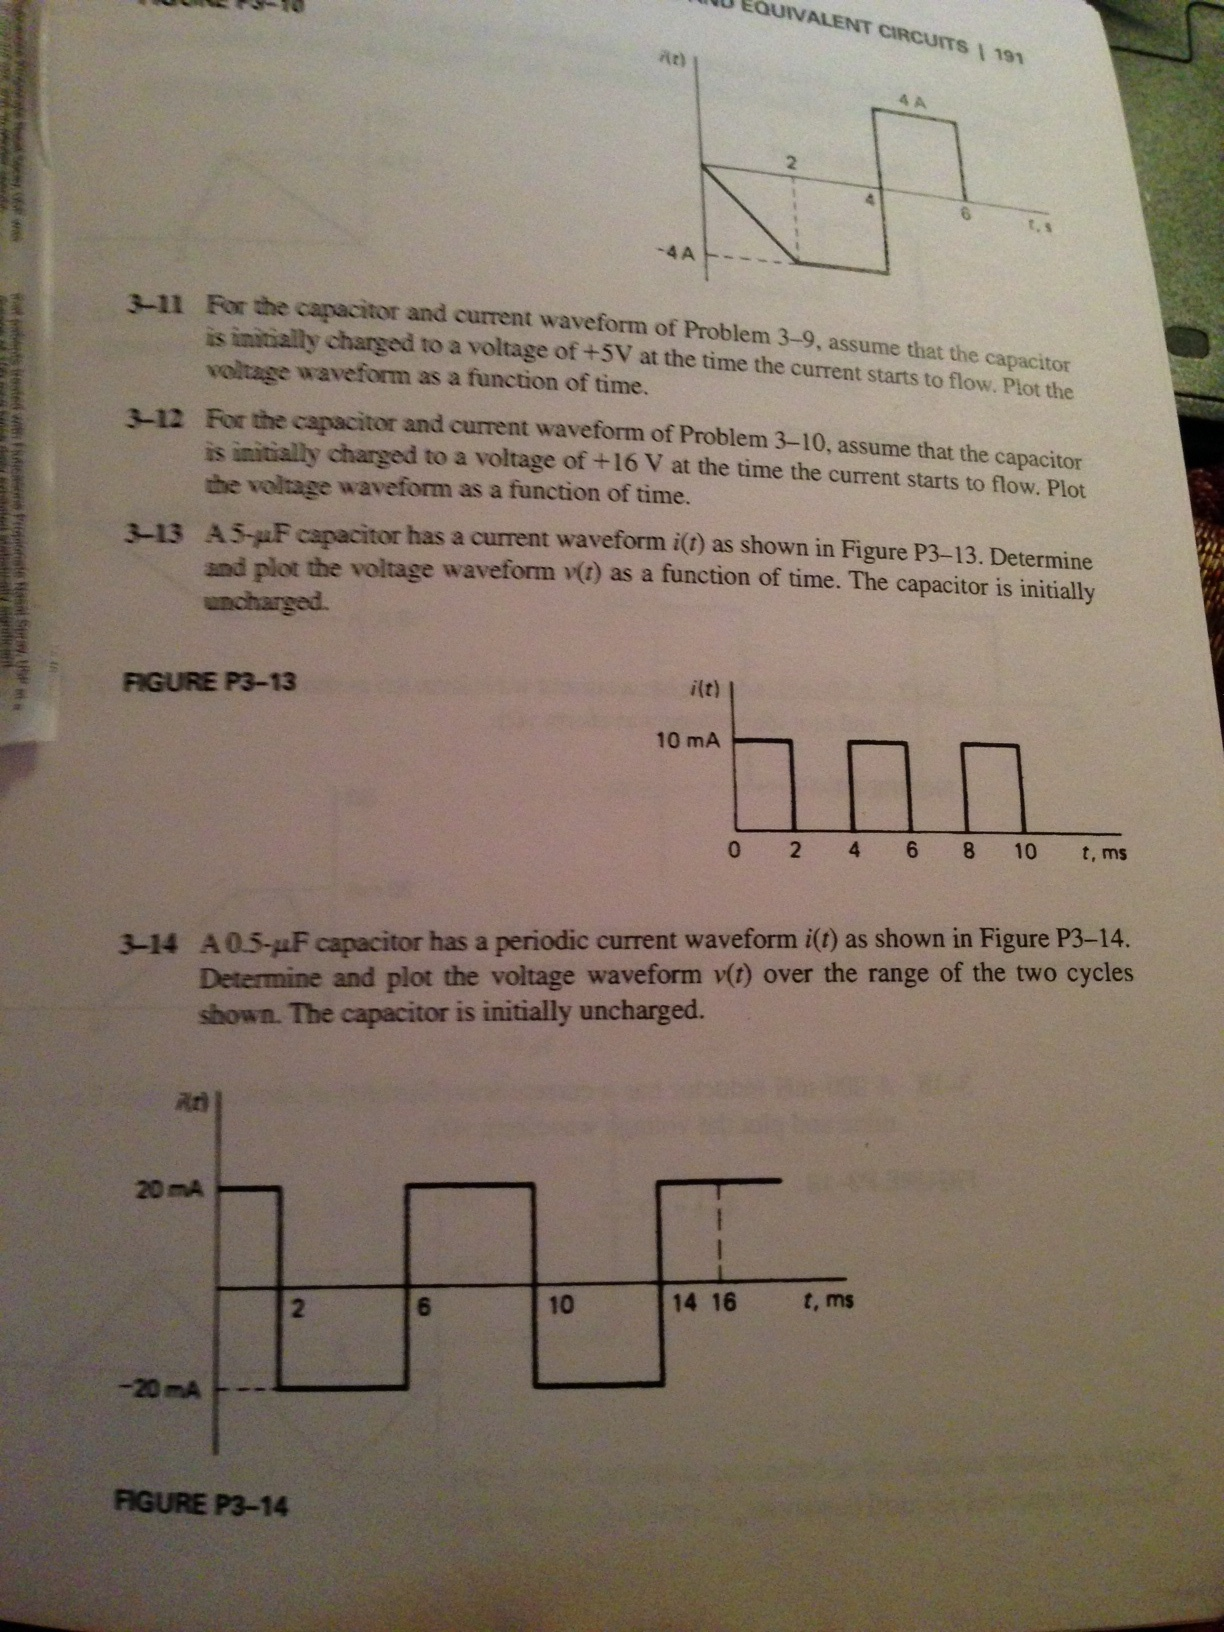 Doing ques 3-14 on image. Need to see graph and ho